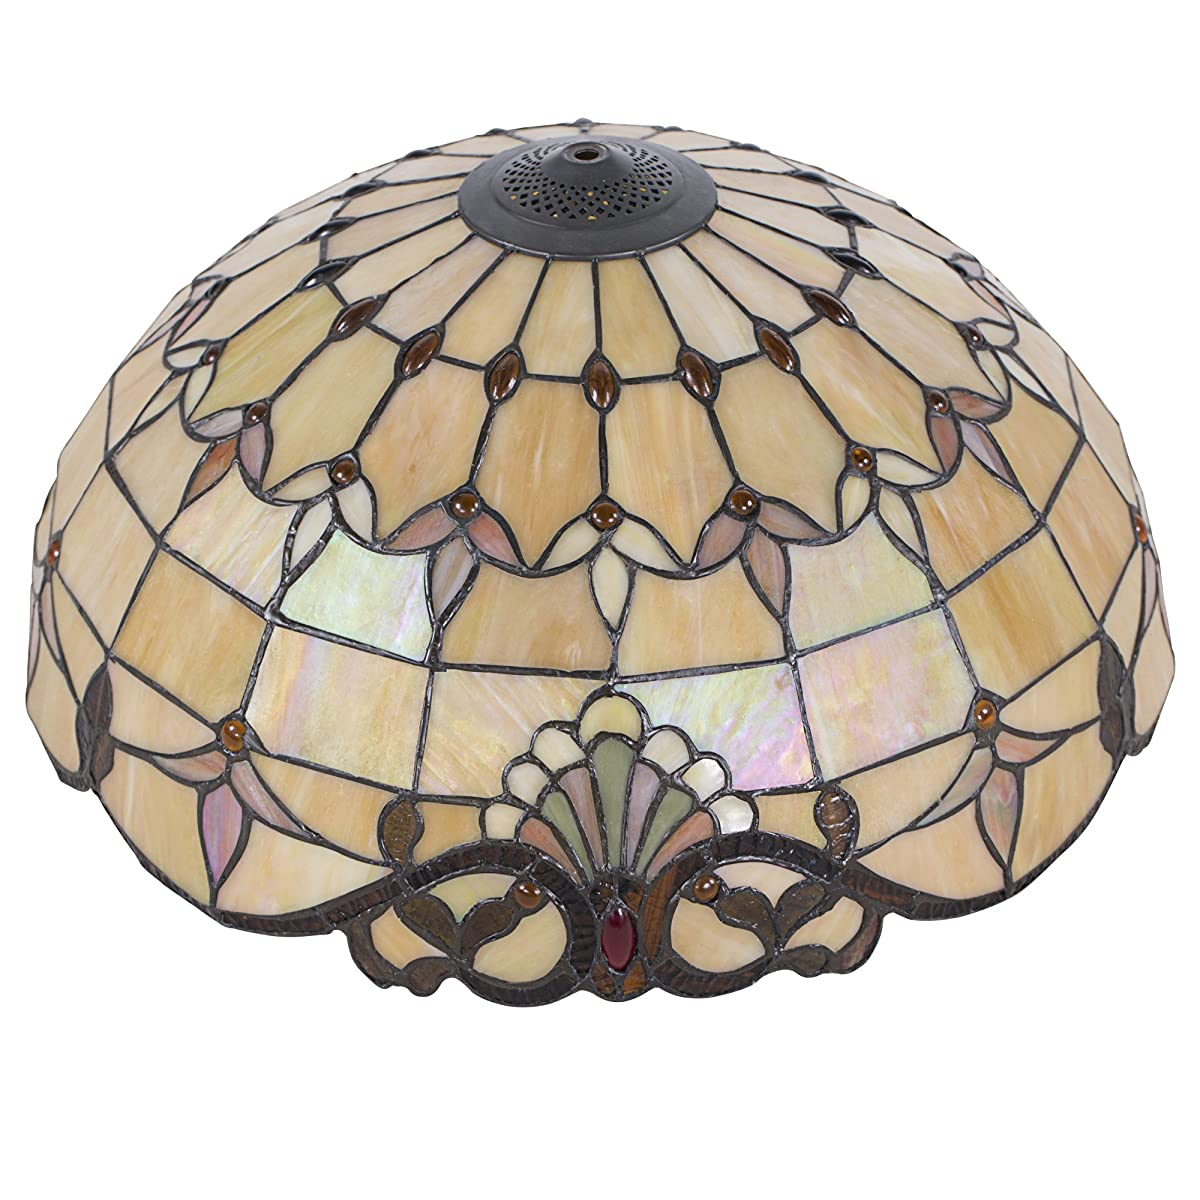 """Cloud Mountain Tiffany Style 20"""" Lampshade Floor Lamp Victorian Double Lit Lamp Home Decor Stained Glass Lighting"""